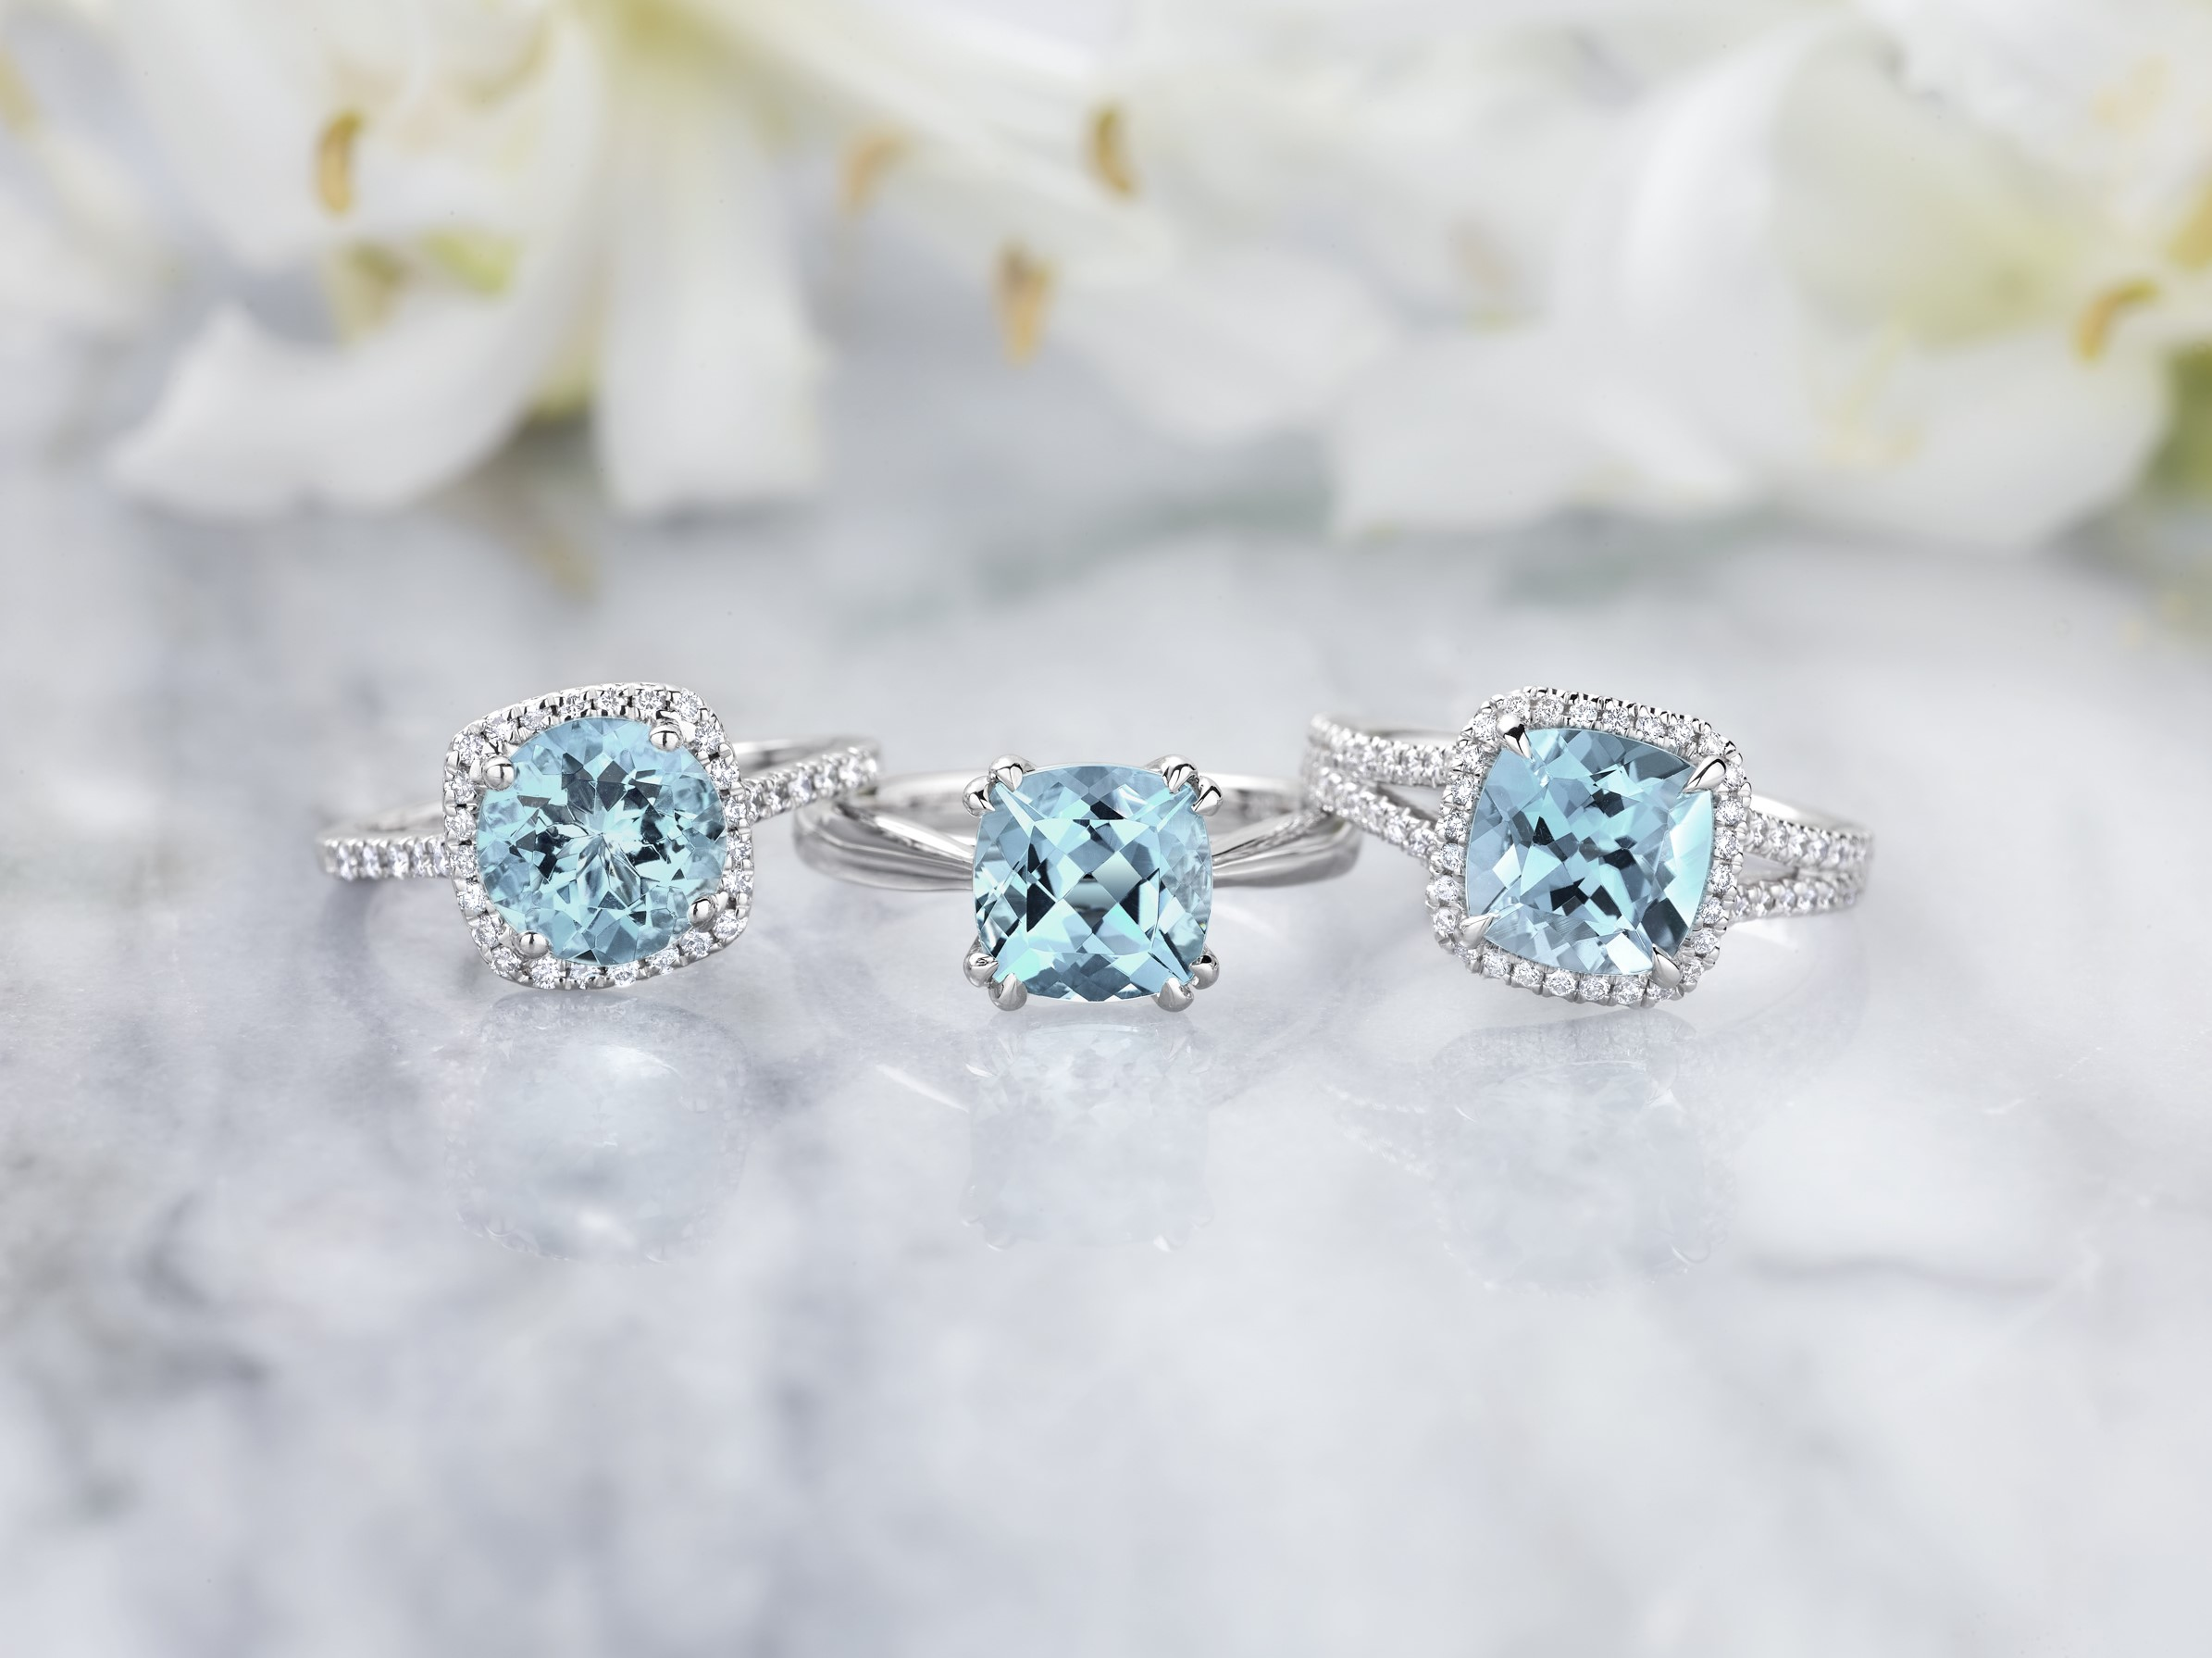 wedding pin diamond aqua marine rings courtney aquamarine erica by platinum engagment and ring snake